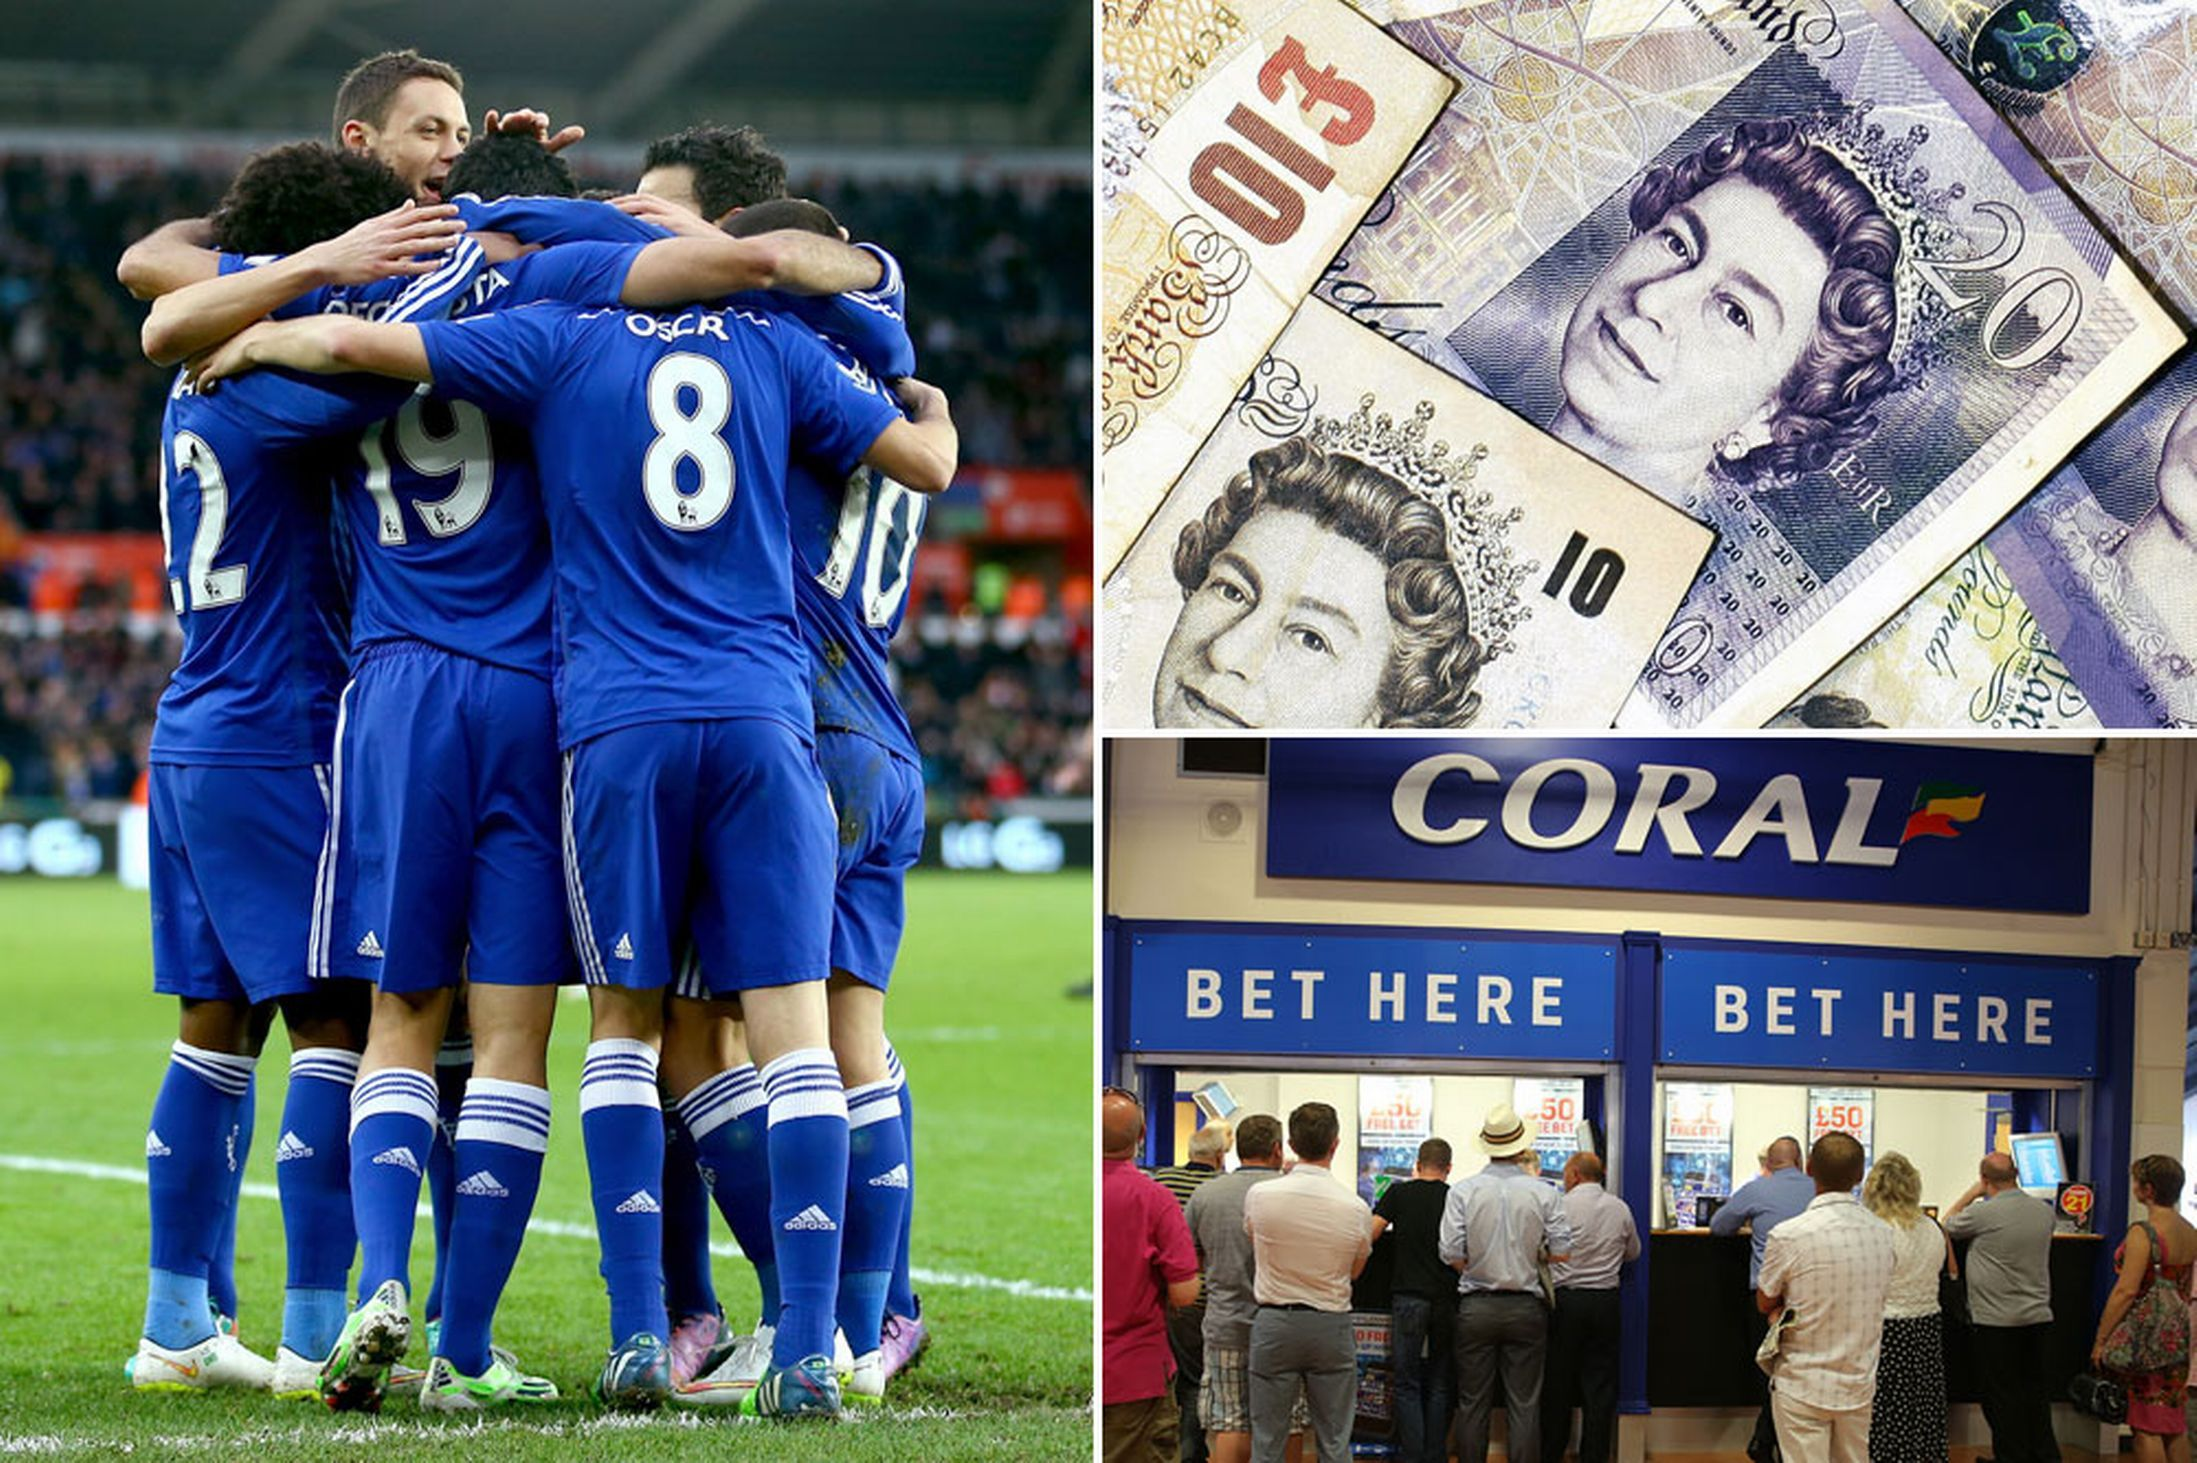 Bookies suffer 'heaviest losses on football ever' after